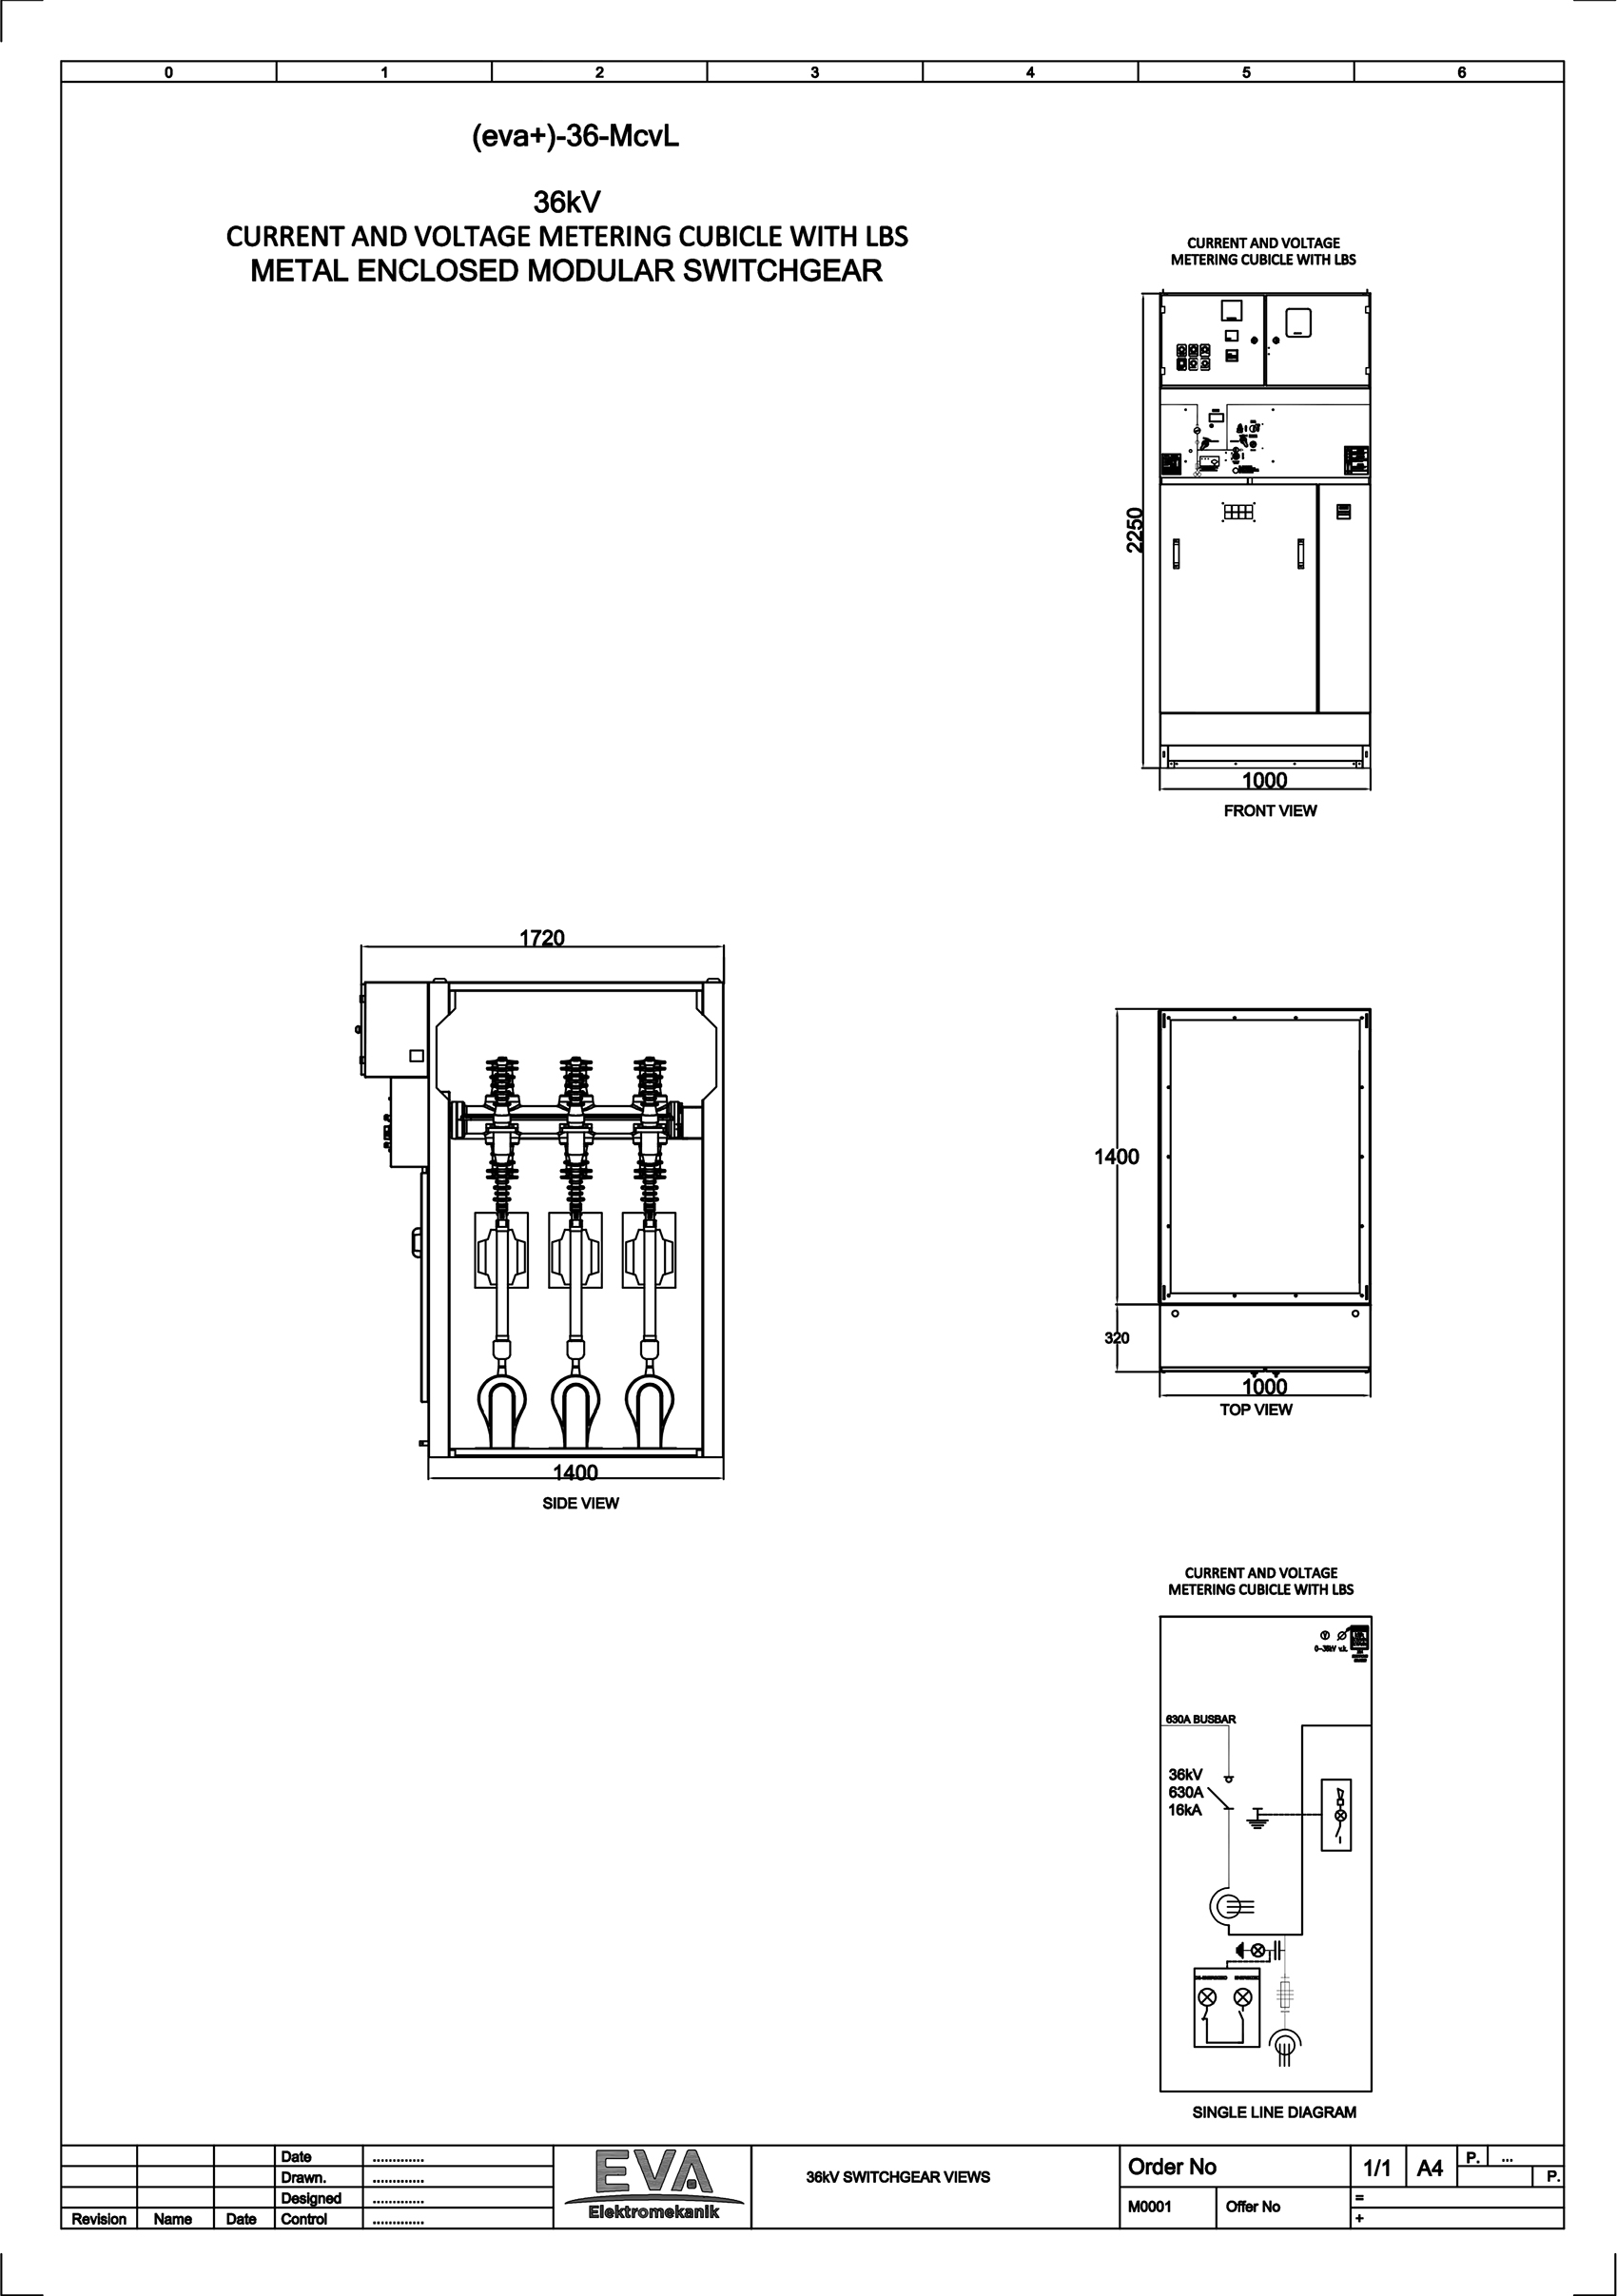 Current and Voltage Metering Cubicle with Load Break Switch (LBS)